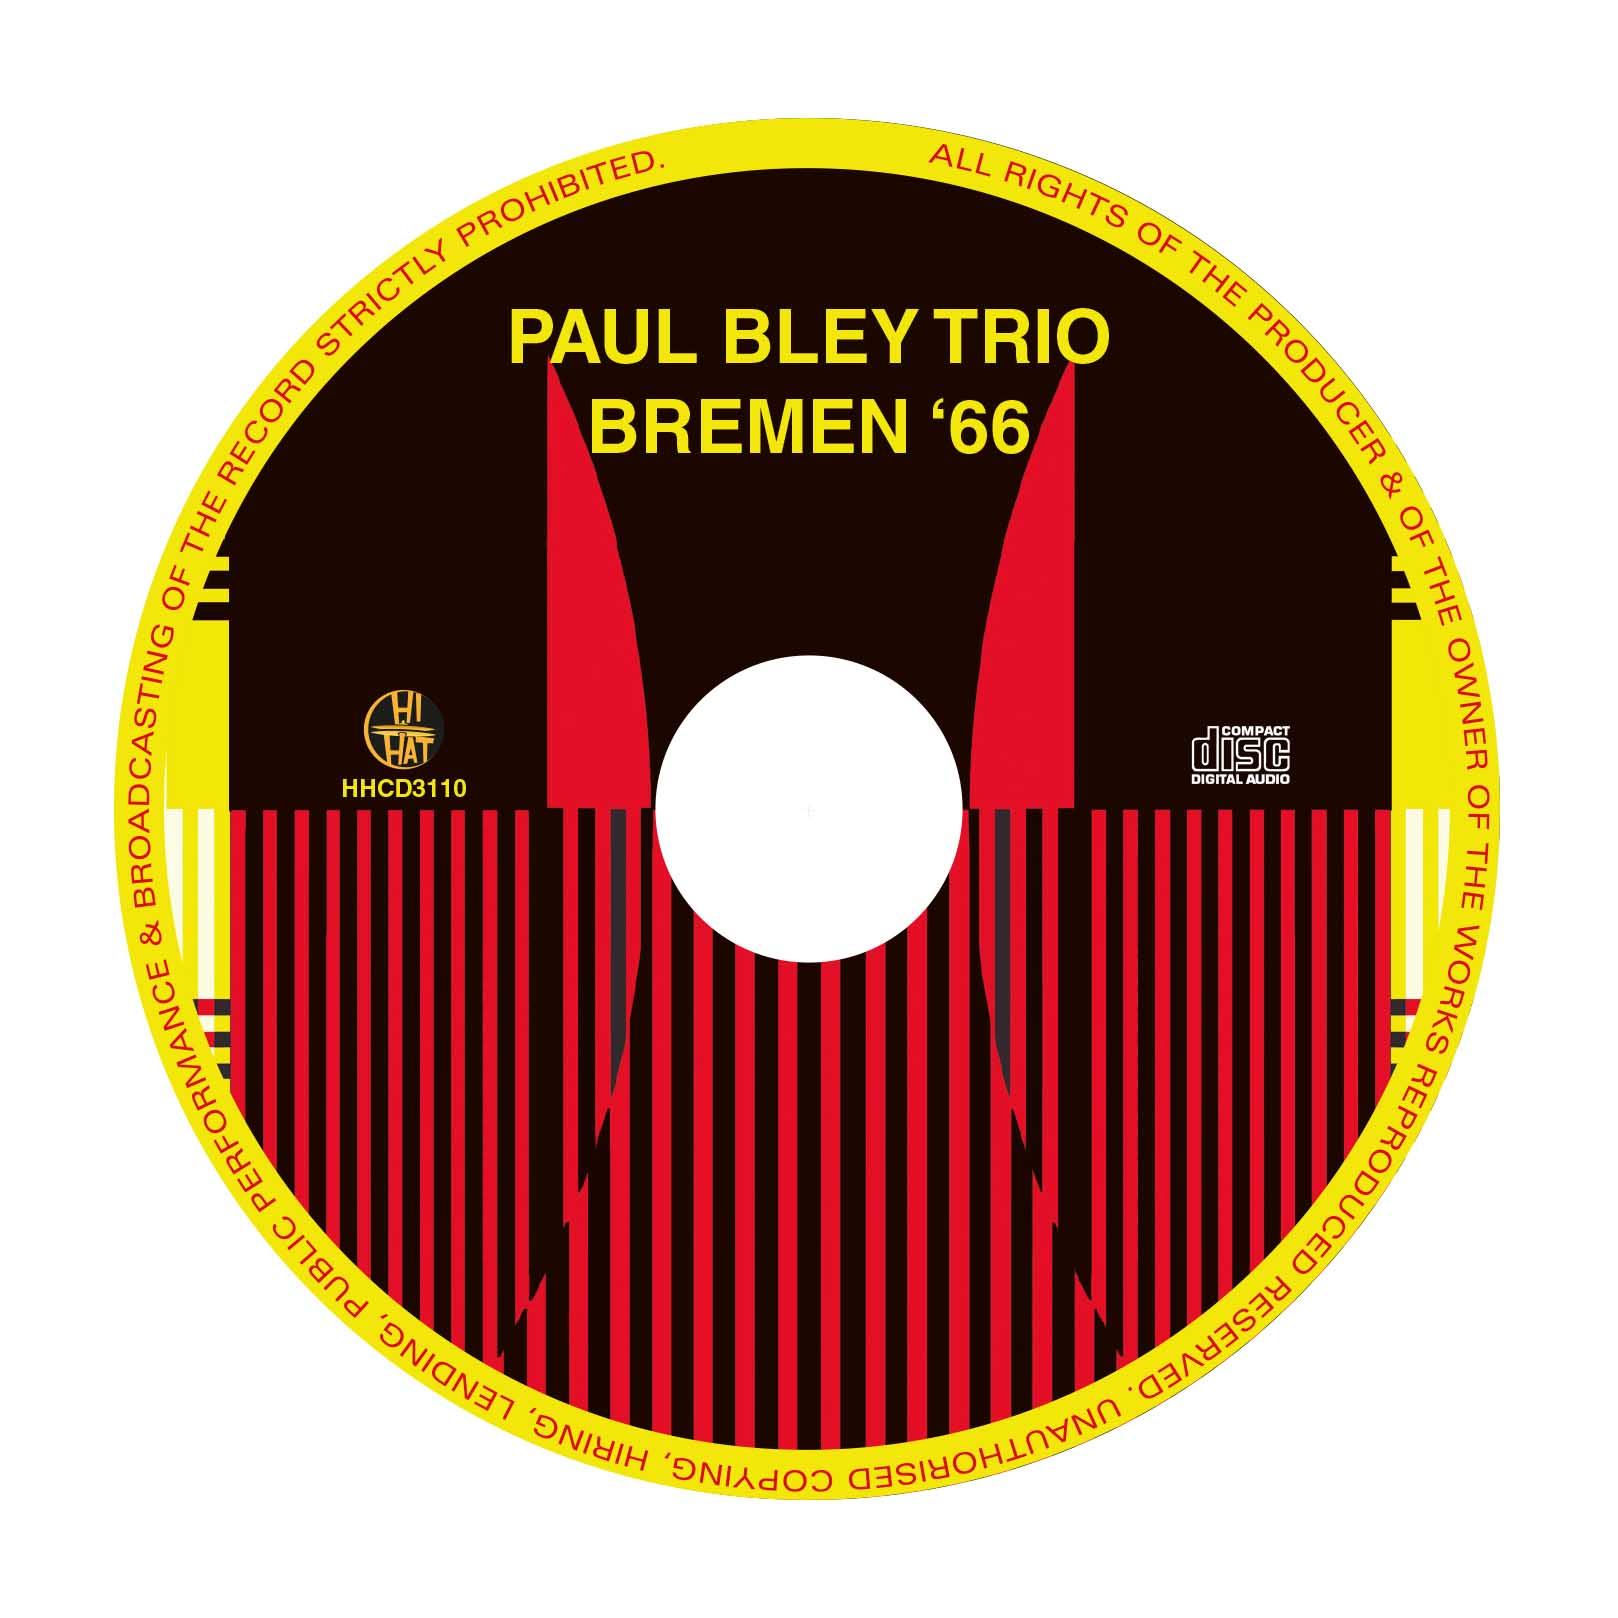 Paul Bley Trio